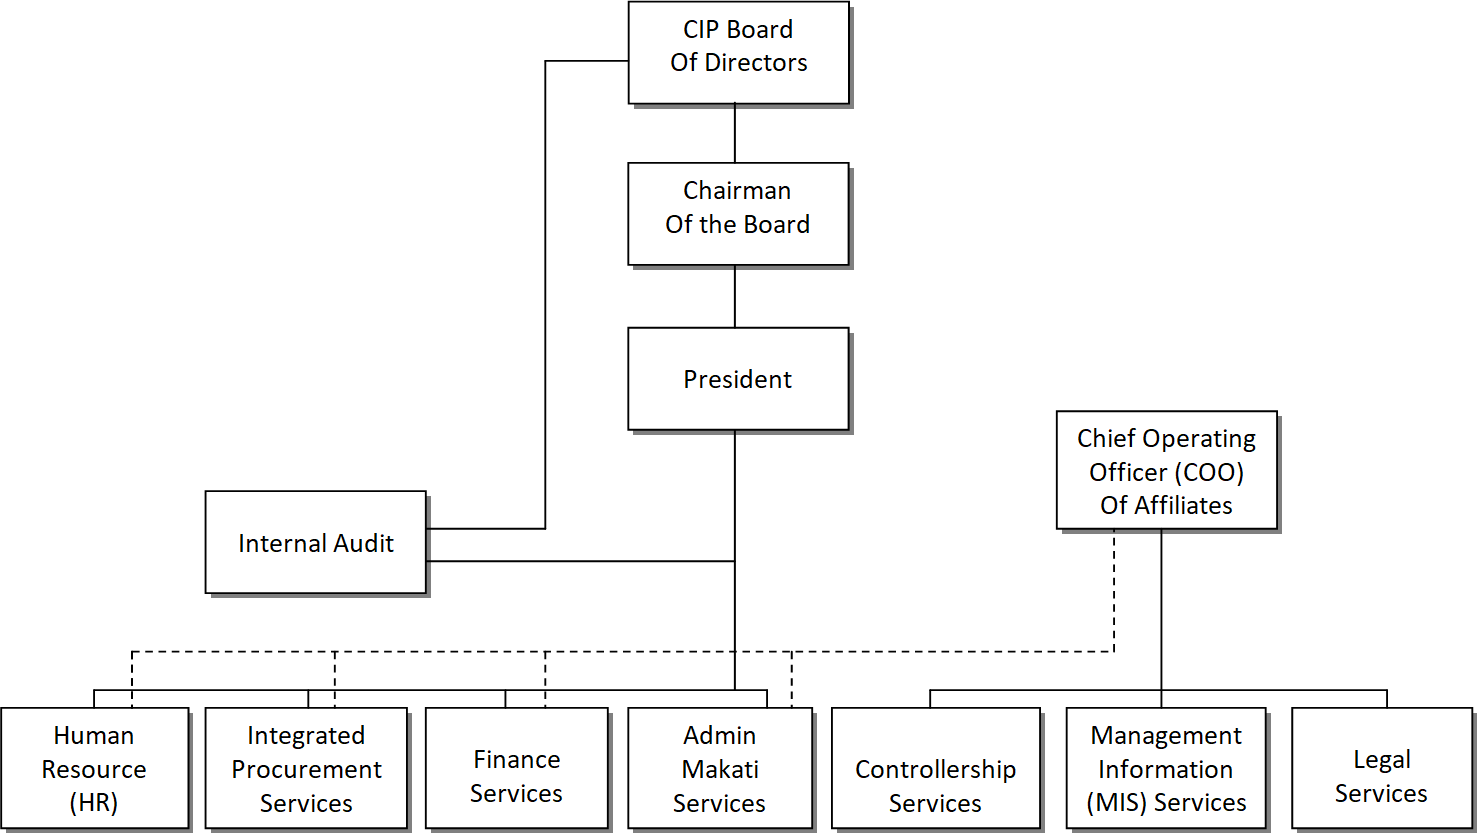 the companys organizational chart